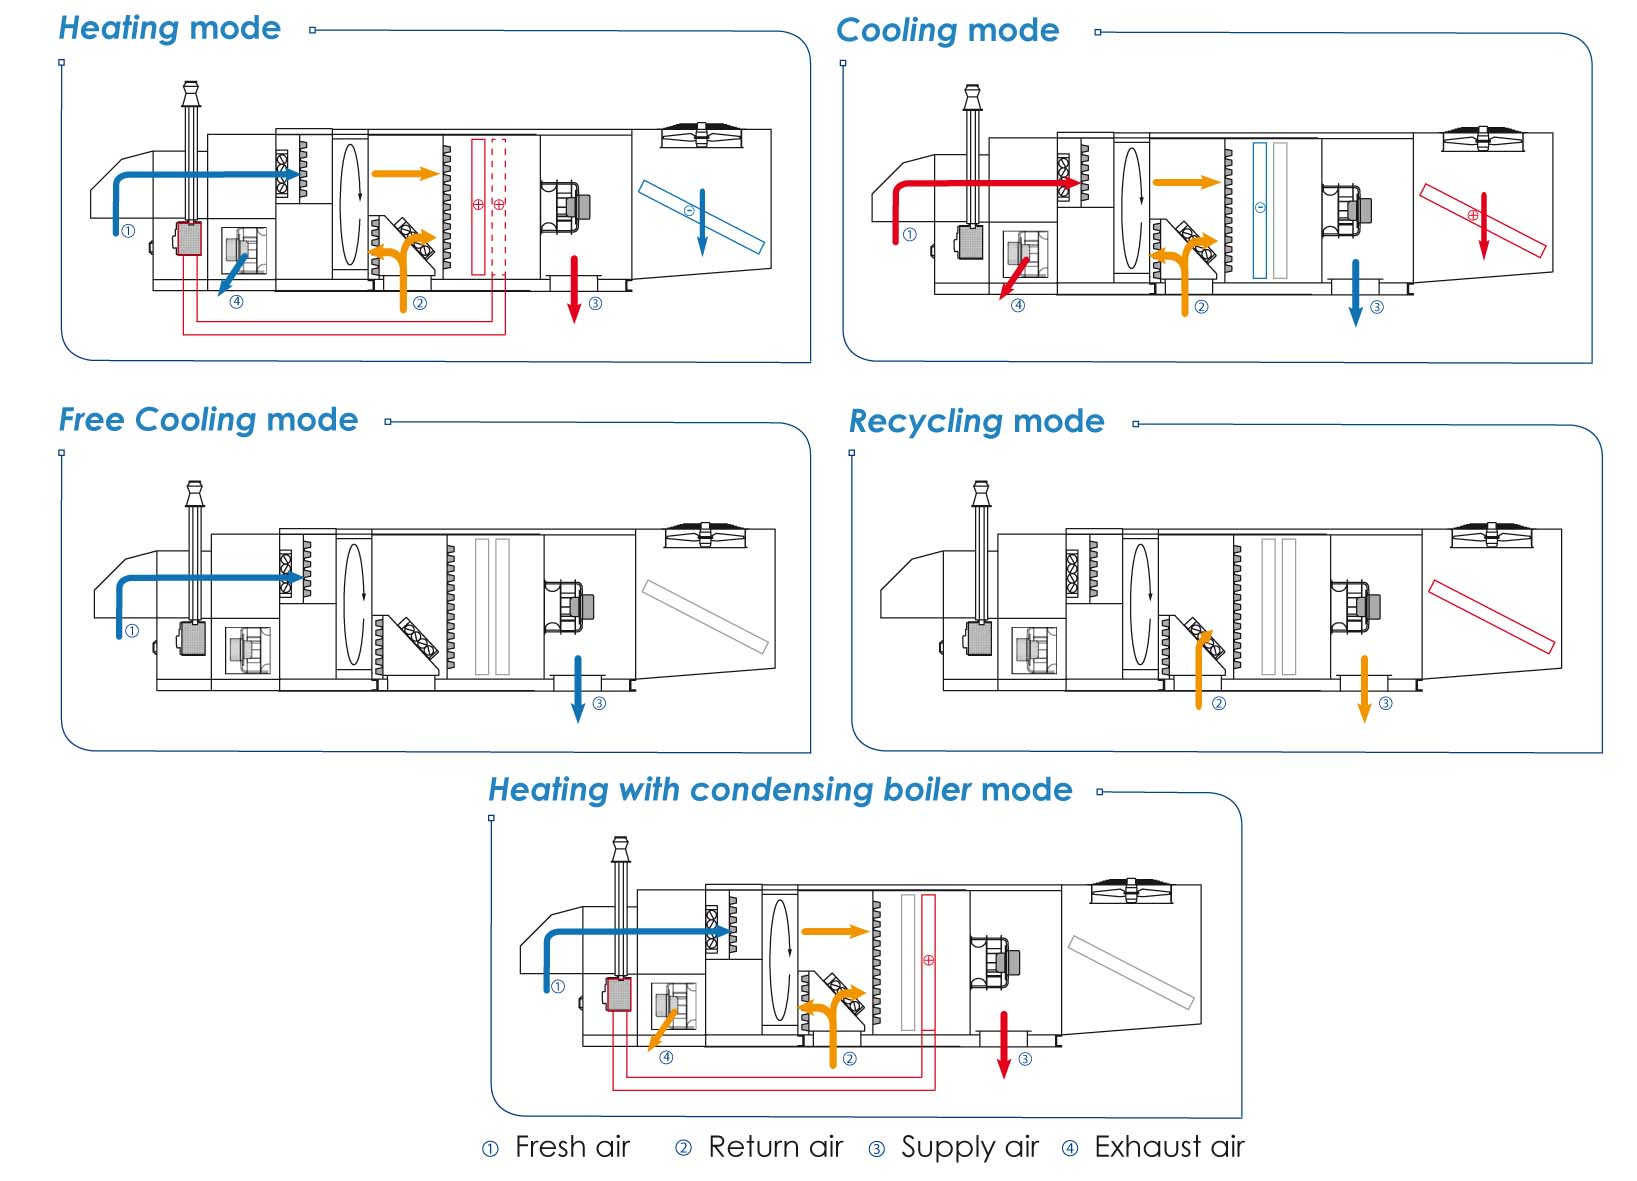 Double flow heat pump with heat recovery and condensing boiler